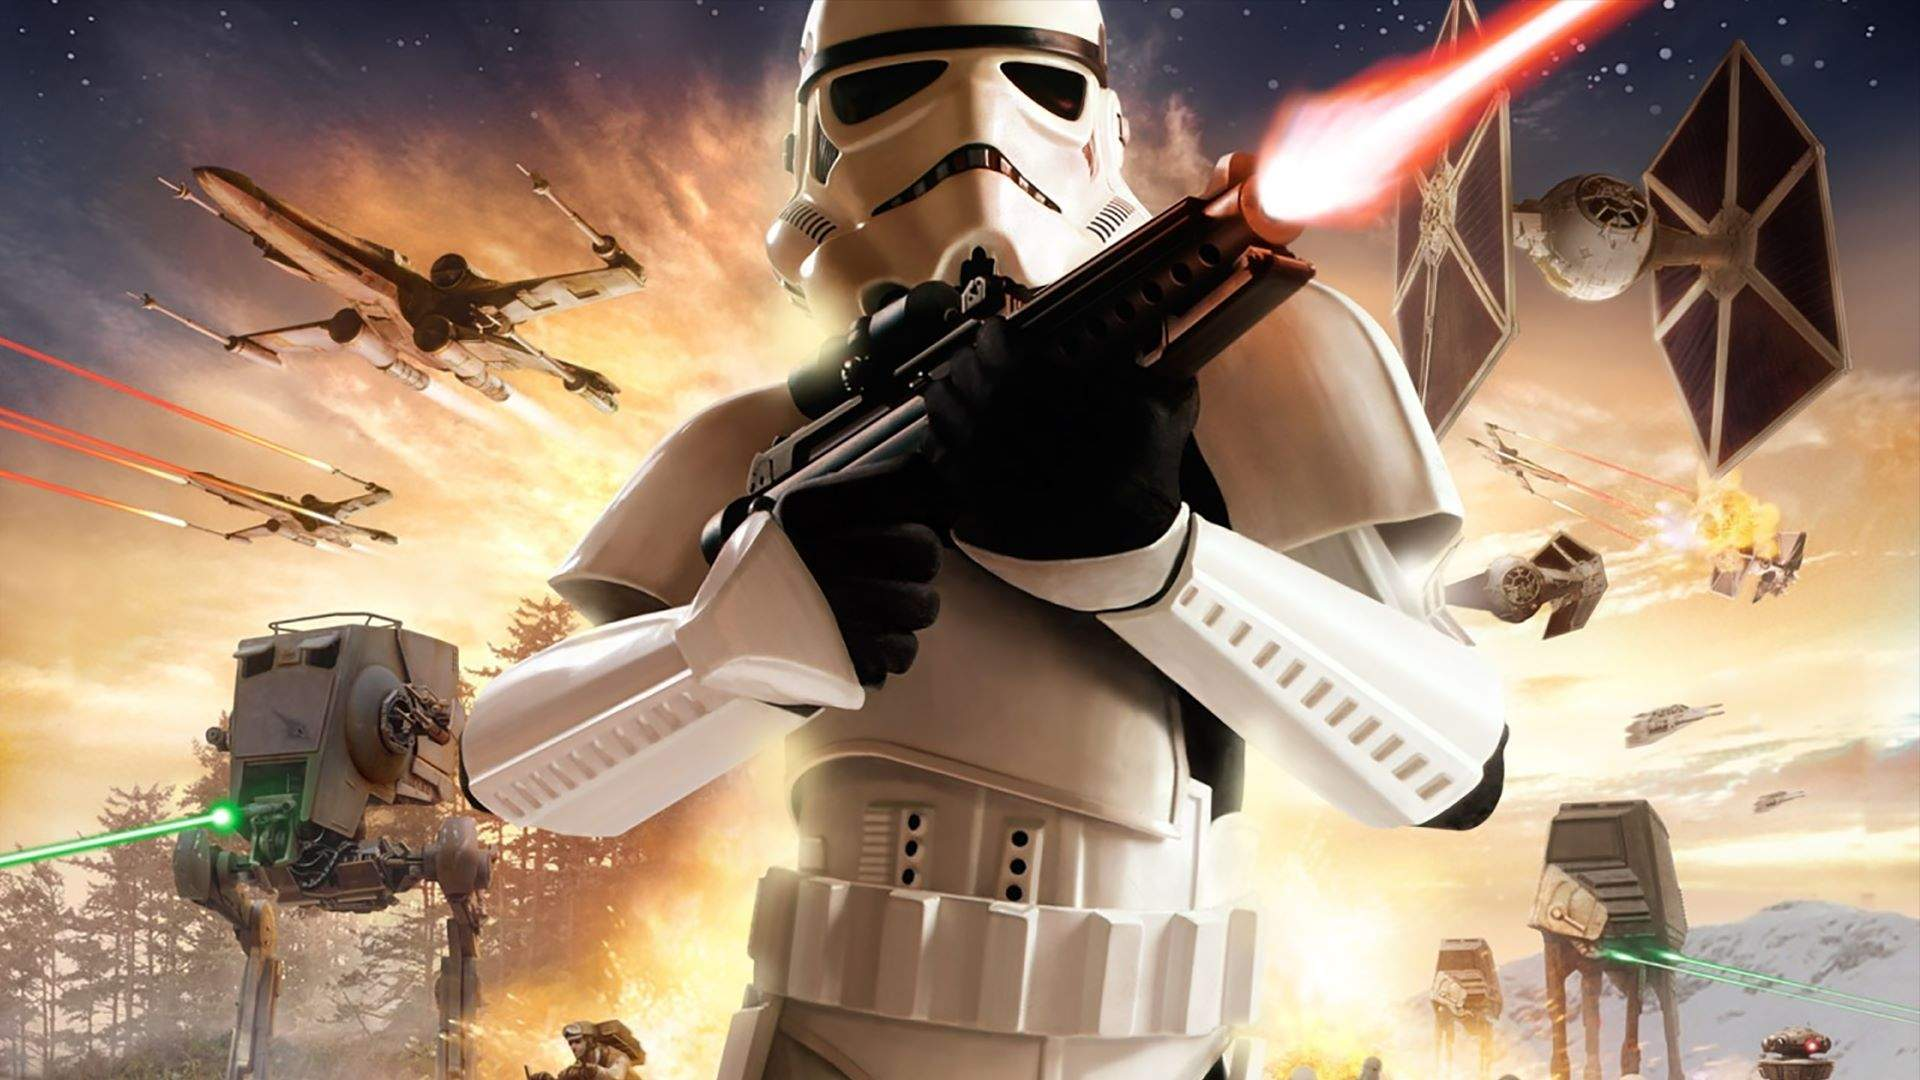 Xbox Live Gold Free Games Star Wars Battlefront, Fable Heroes, Call of Cthulhu and TT Isle of Man